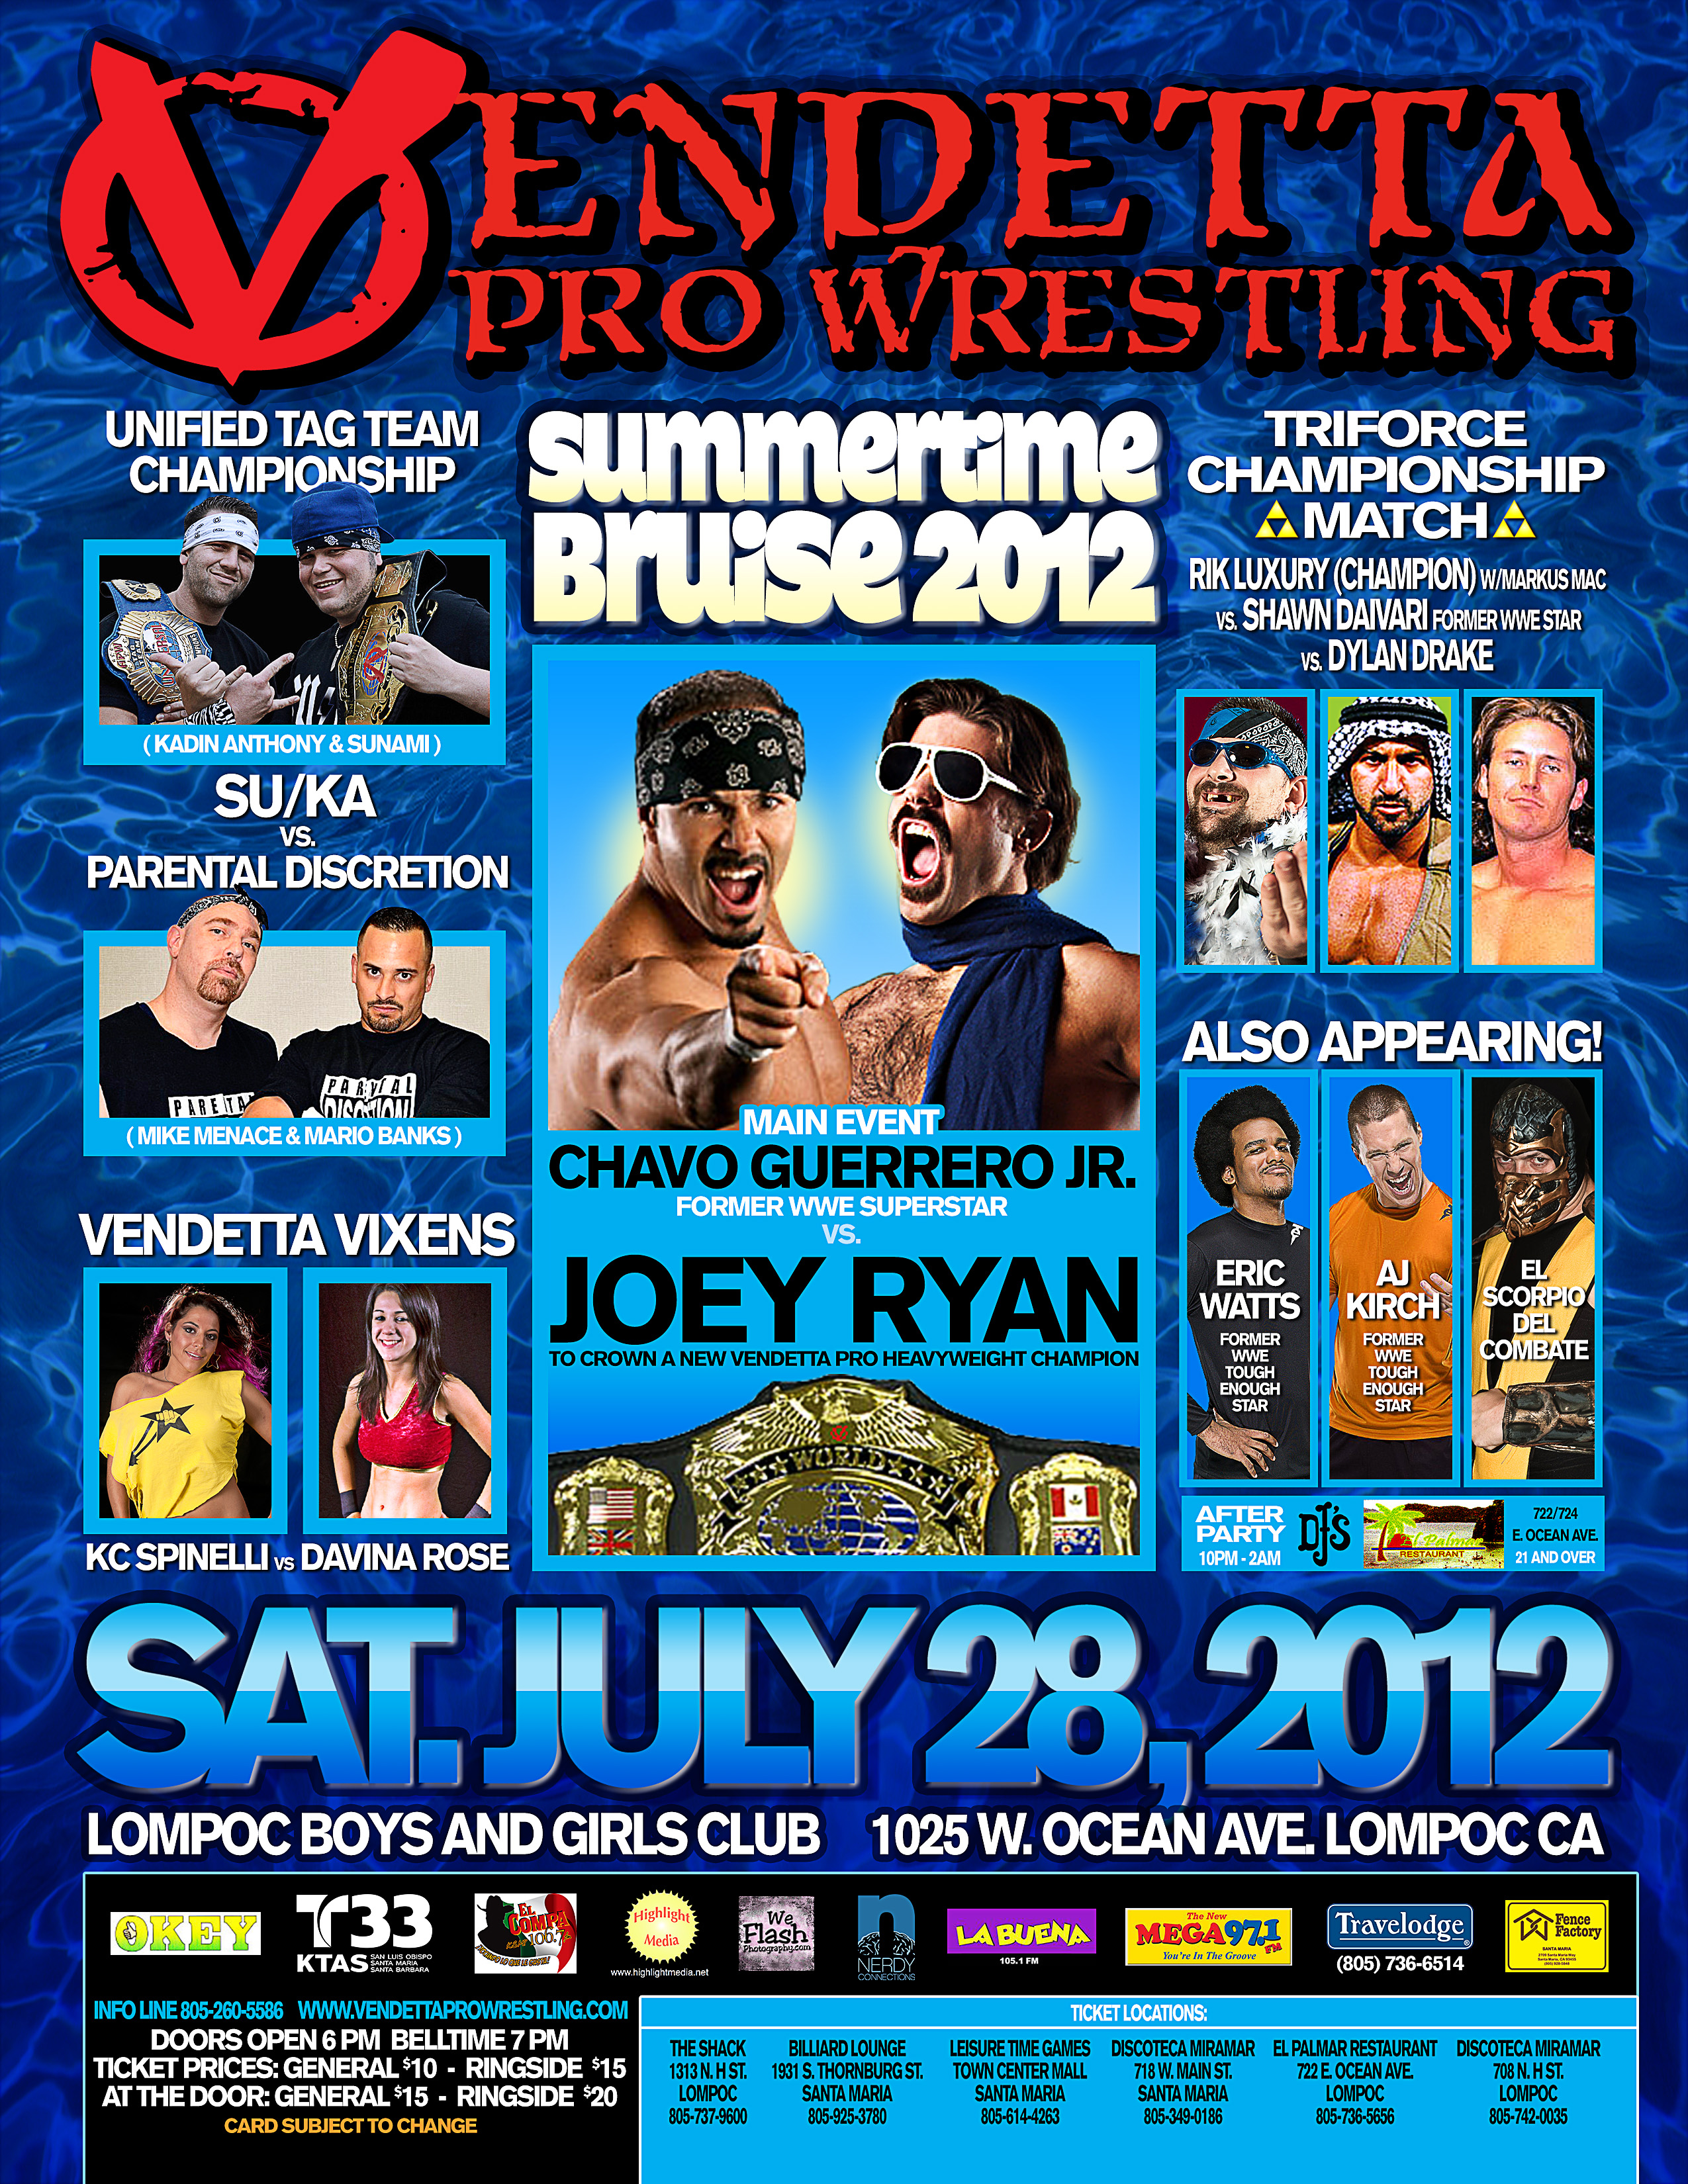 Summertime Bruise 2012 event flyer